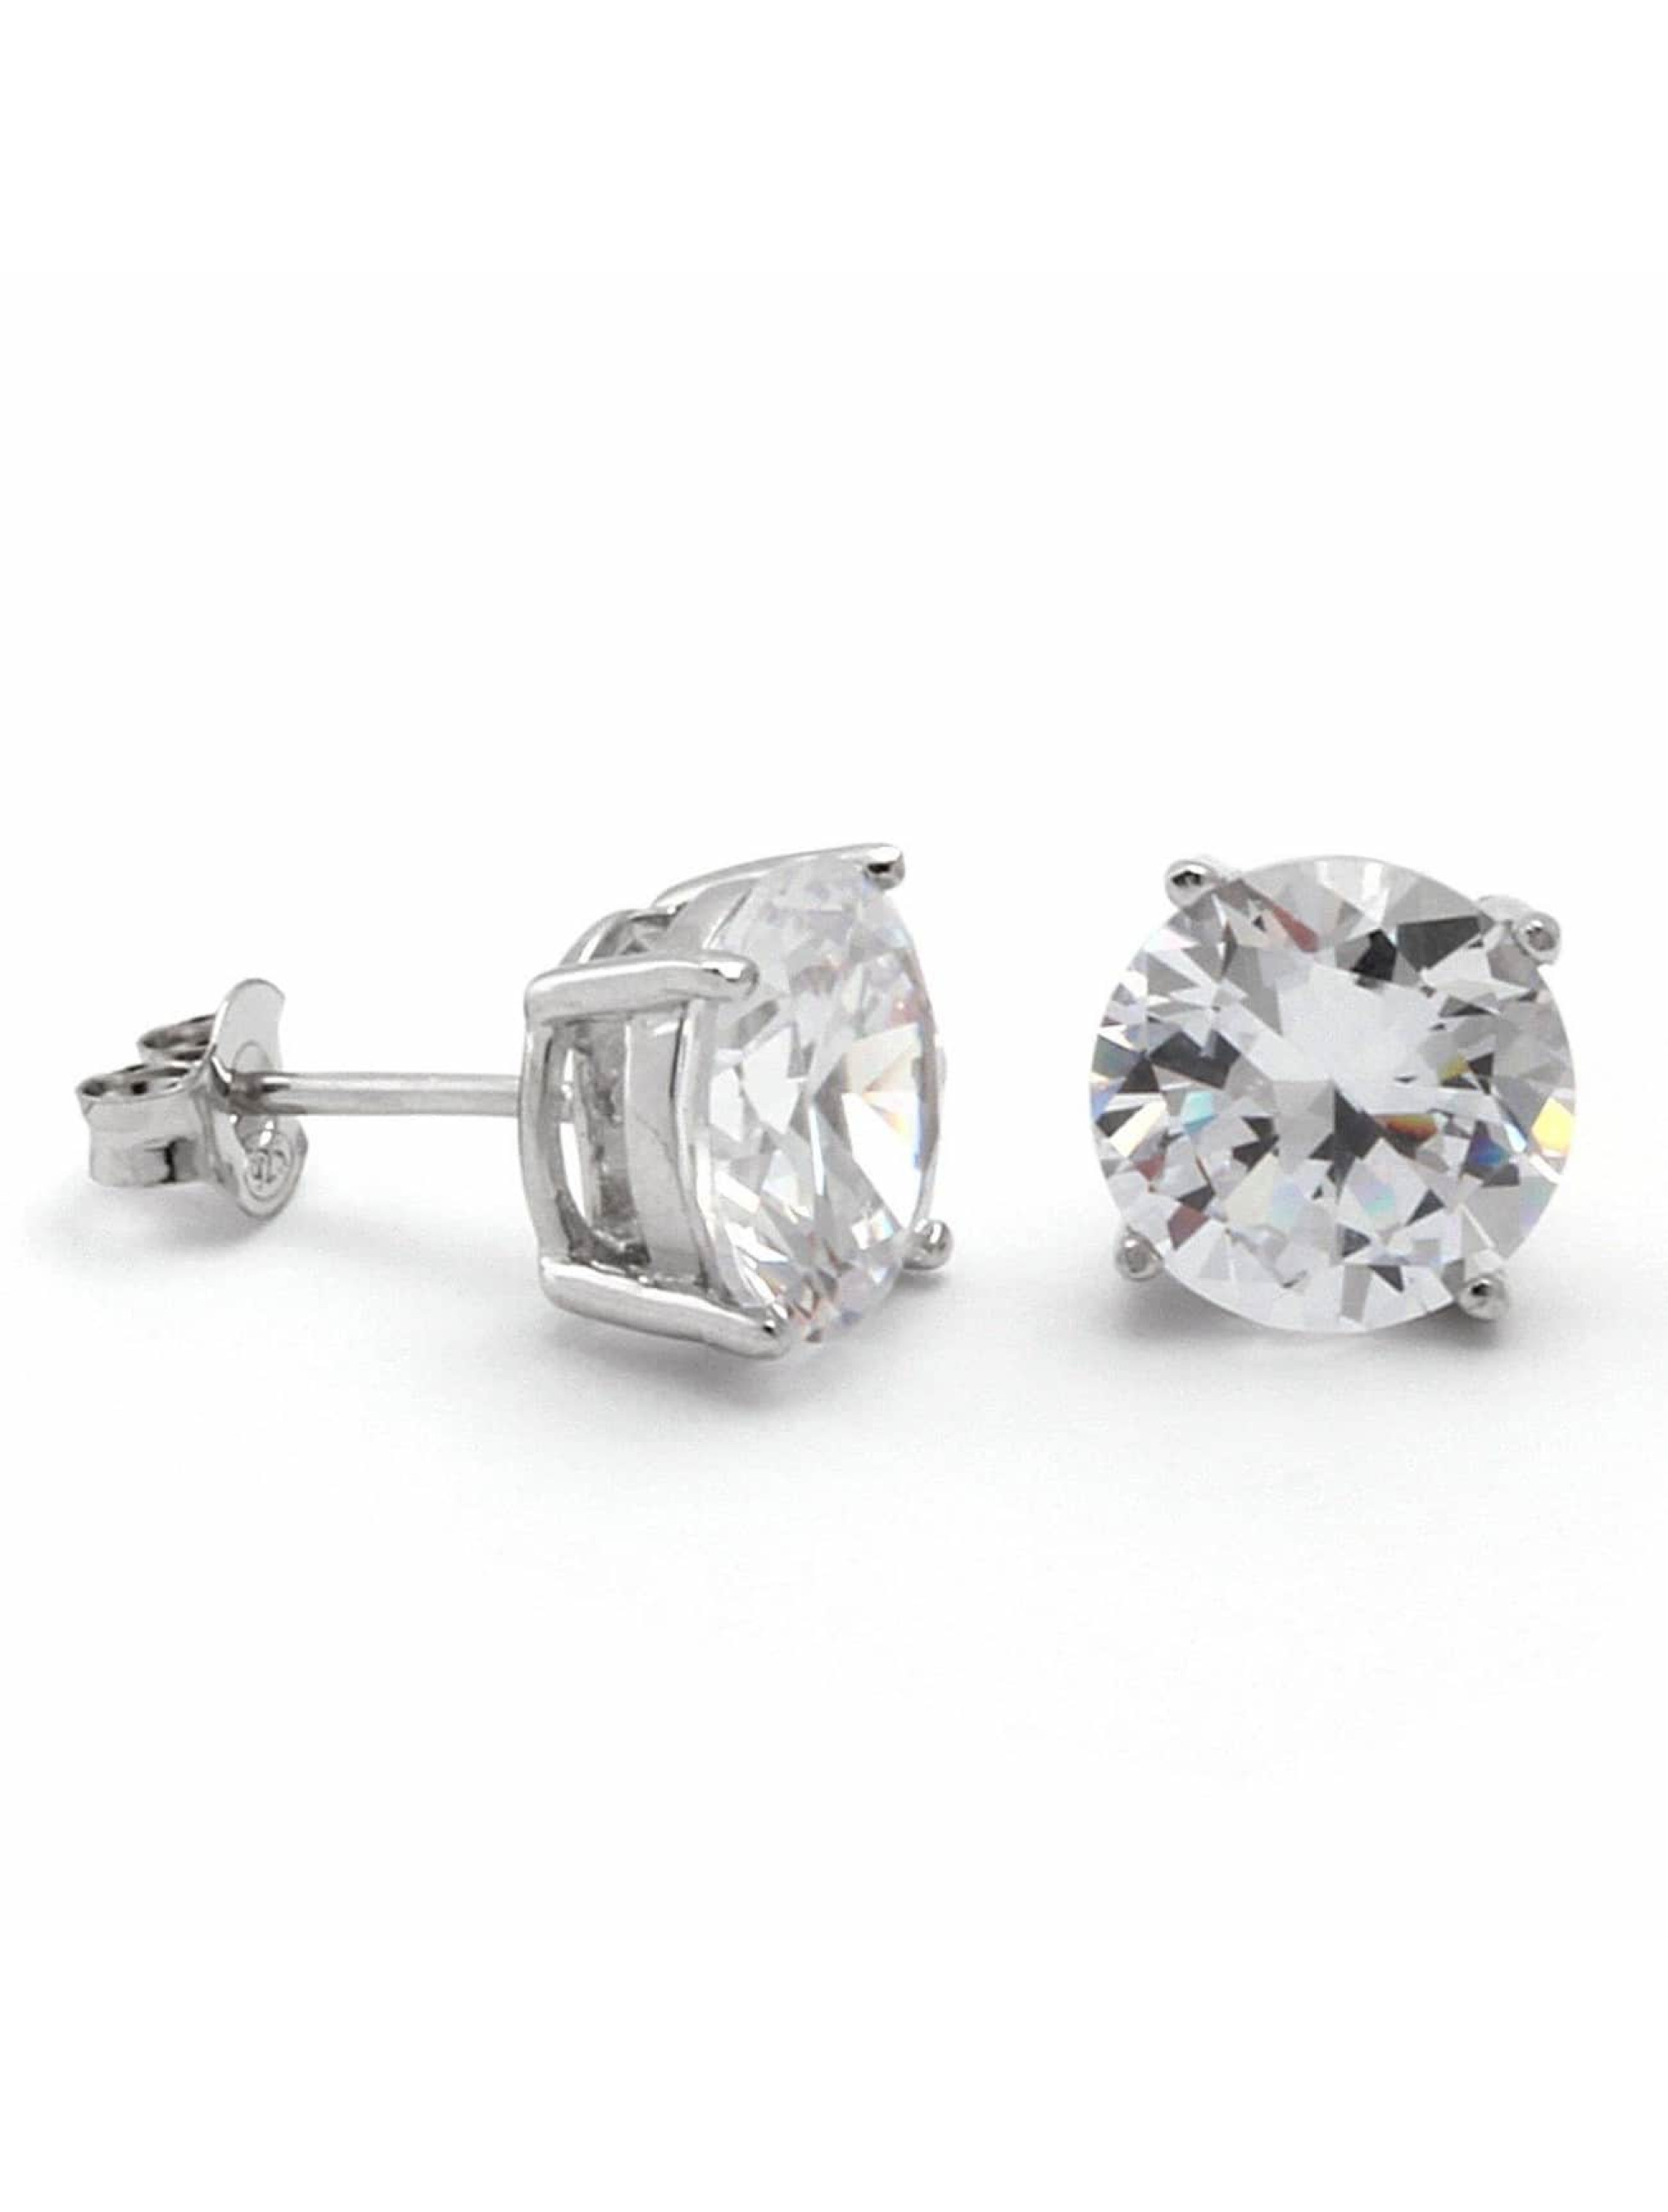 KING ICE Earring Rhodium_Plated 6mm 925 Sterling_Silver CZ silver colored